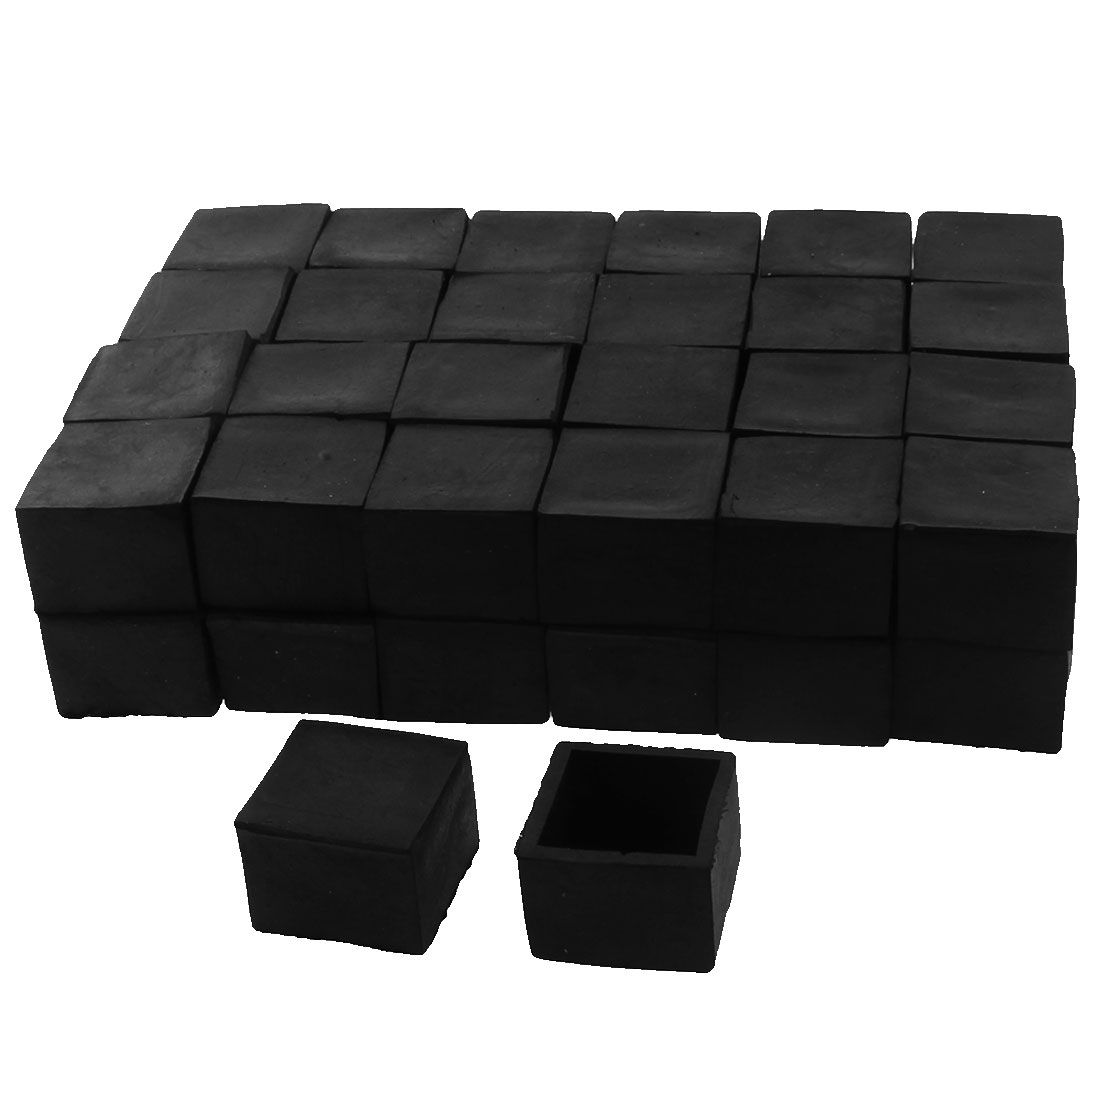 30mm x 30mm Square Shaped Furniture Table Chair Foot Leg Rubber End Cap Cover Black 50pcs